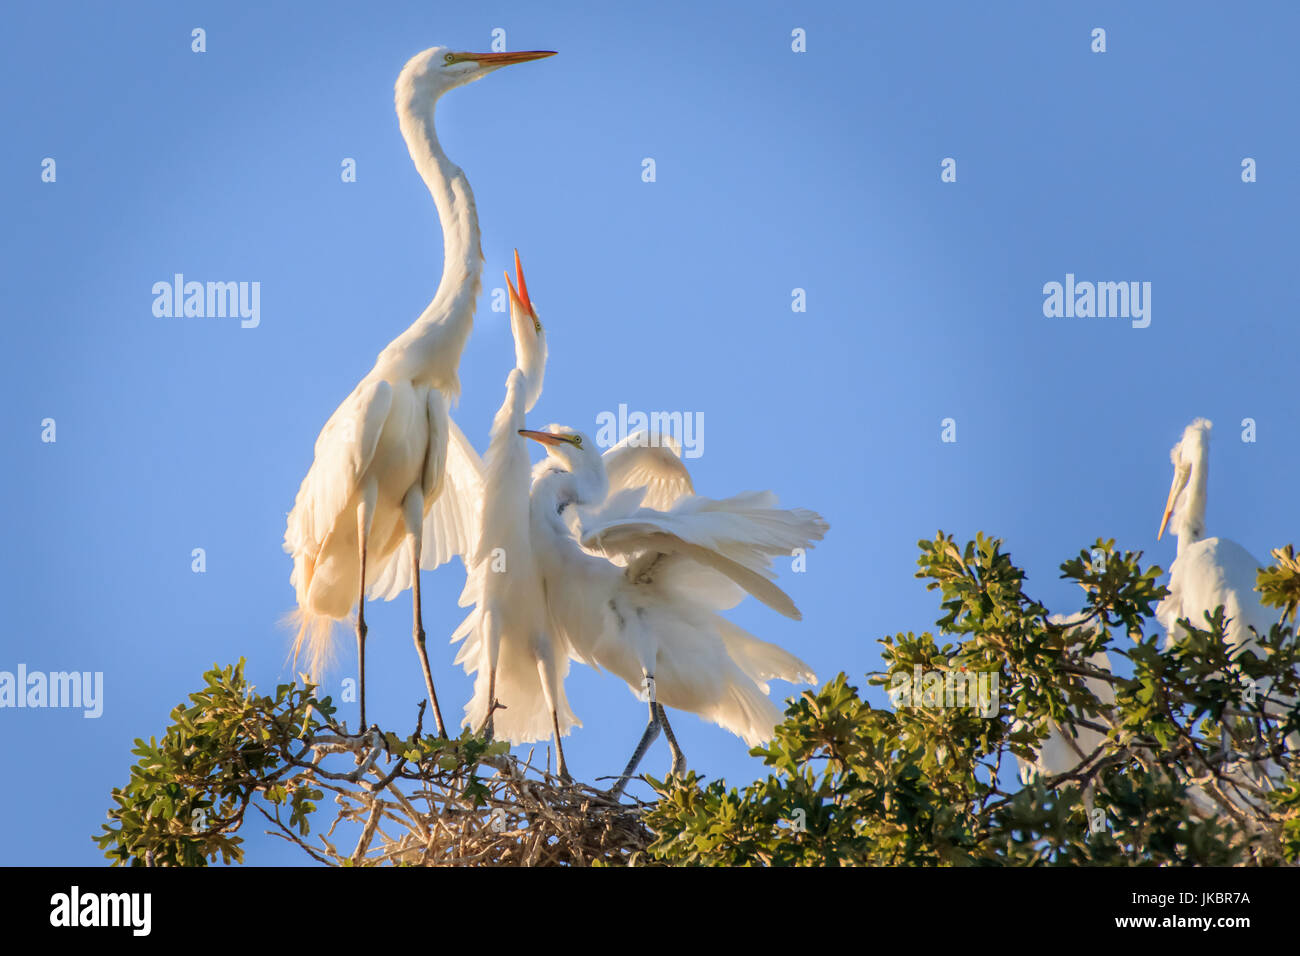 Several Great Egrets interacting in tree tops, - Stock Image